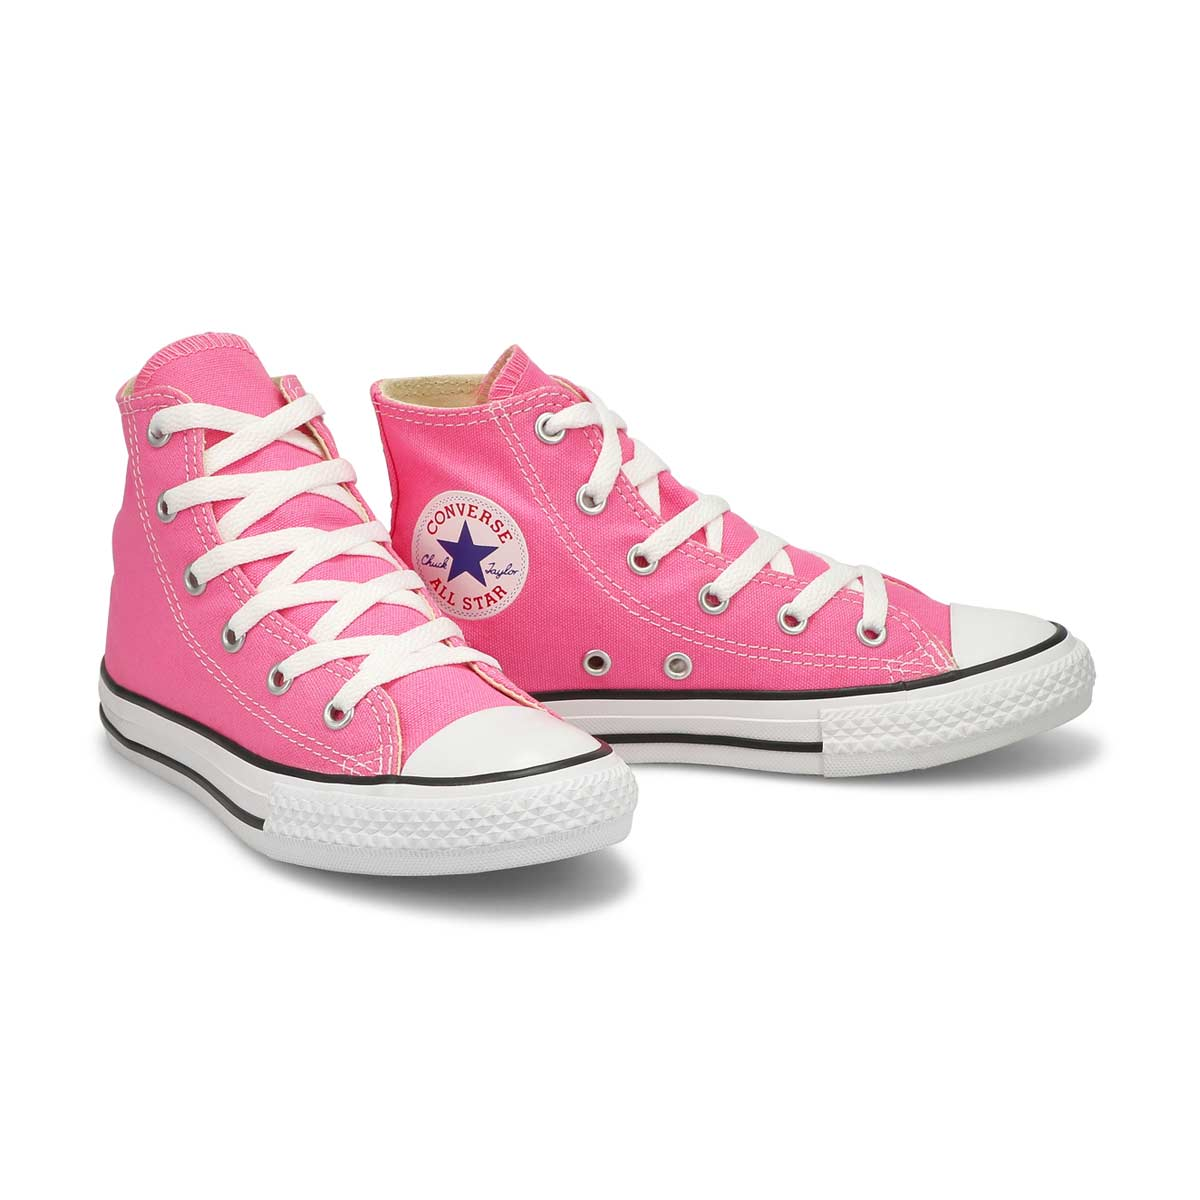 Grls CTAS Core pink high top sneaker